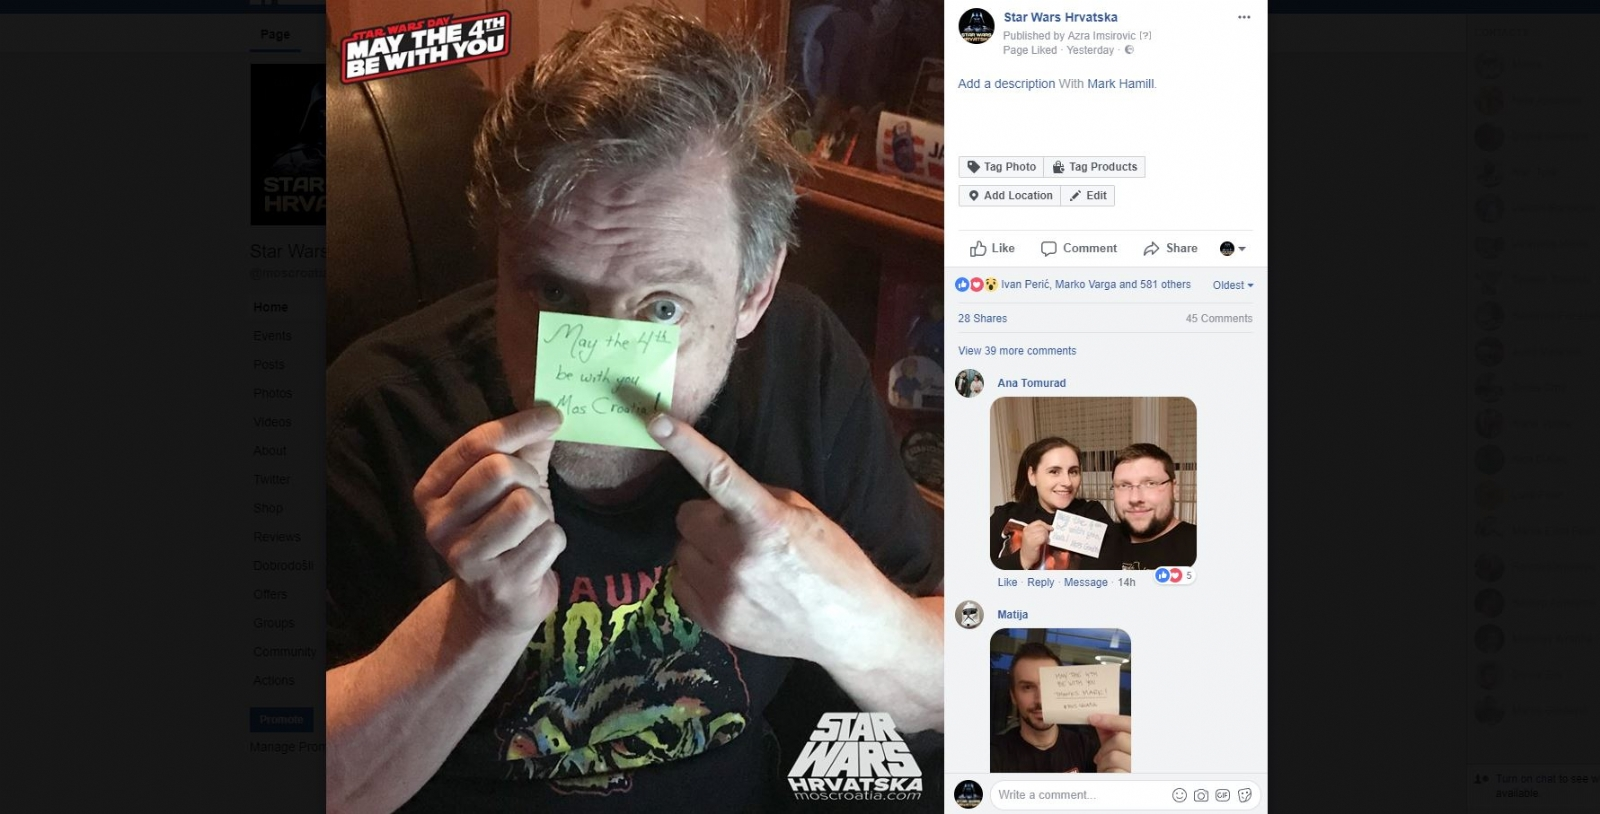 Mark Hamill čestitao May the 4th udruzi Star Wars fanova u Hrvatskoj